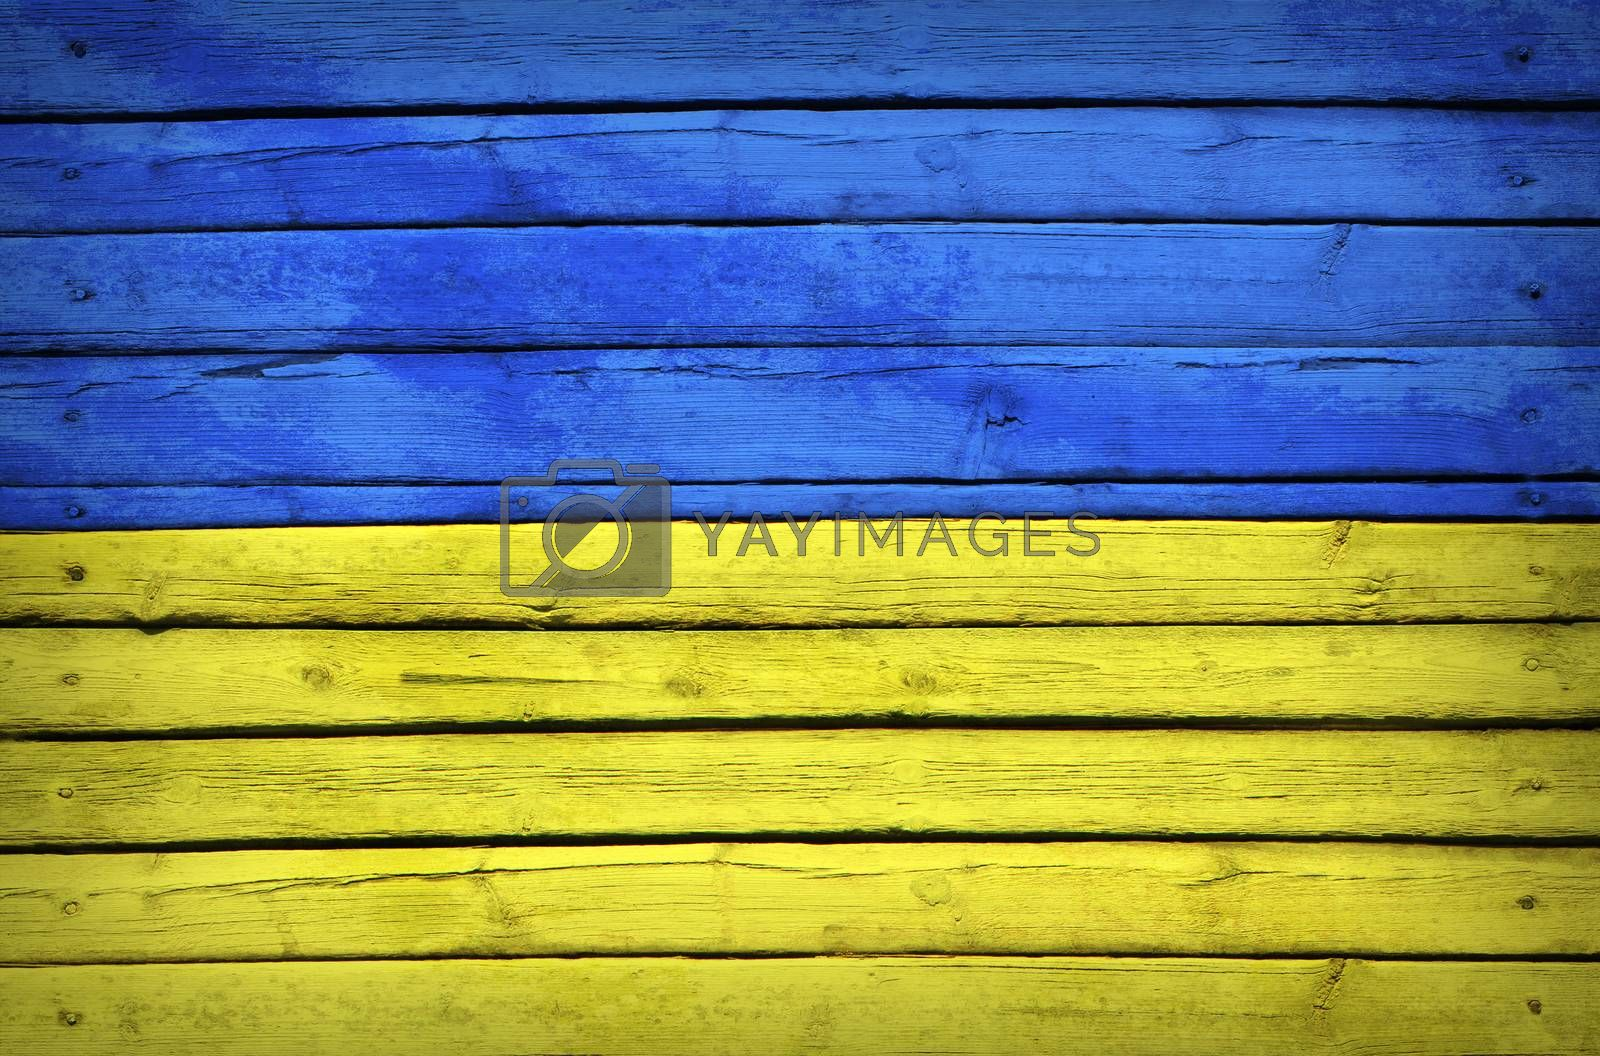 Ukrainian flag painted on wooden boards by cherezoff